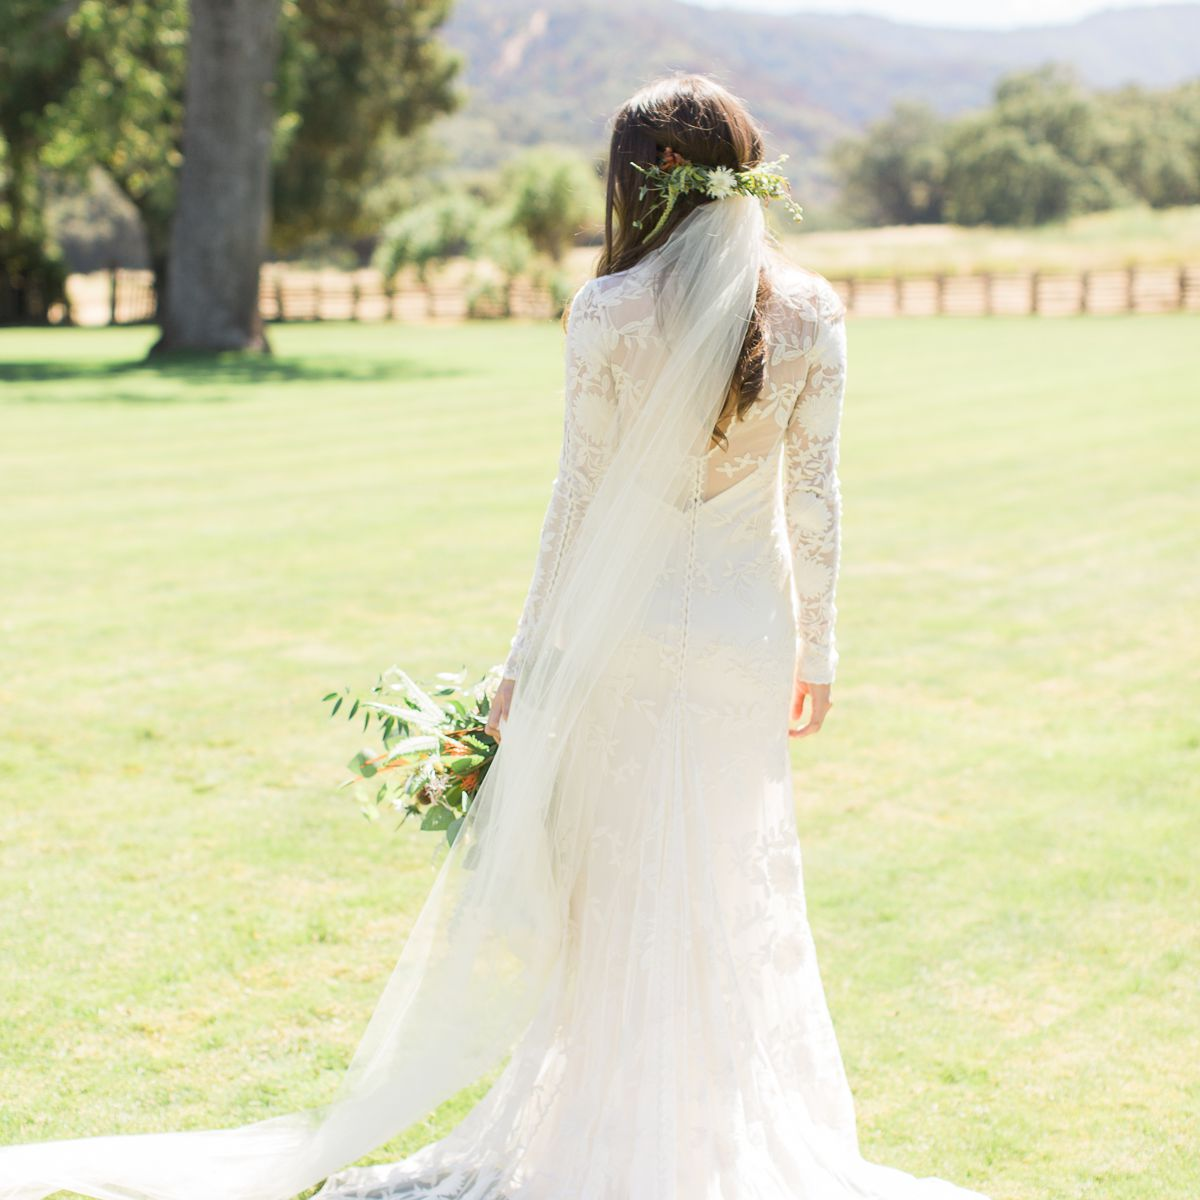 <p>Bride shot from the back</p><br><br>